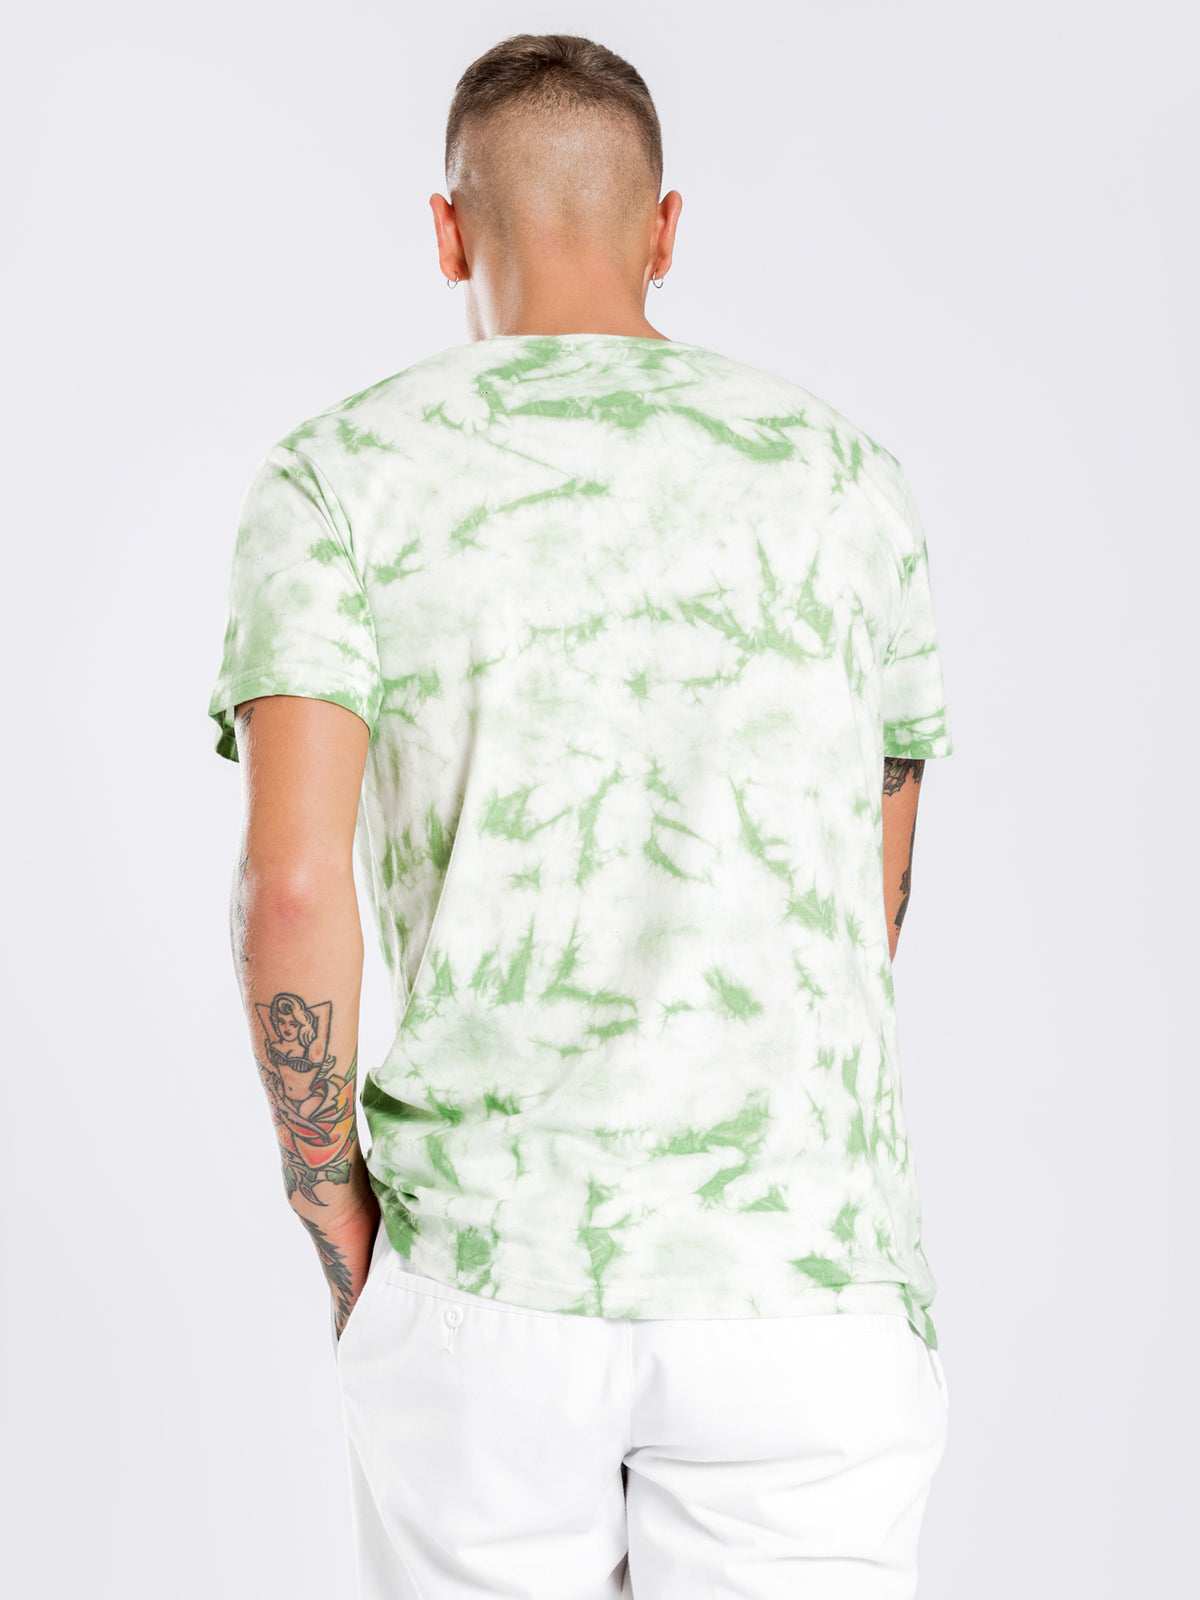 Authentic Costium T-Shirt in Green Tie Dye